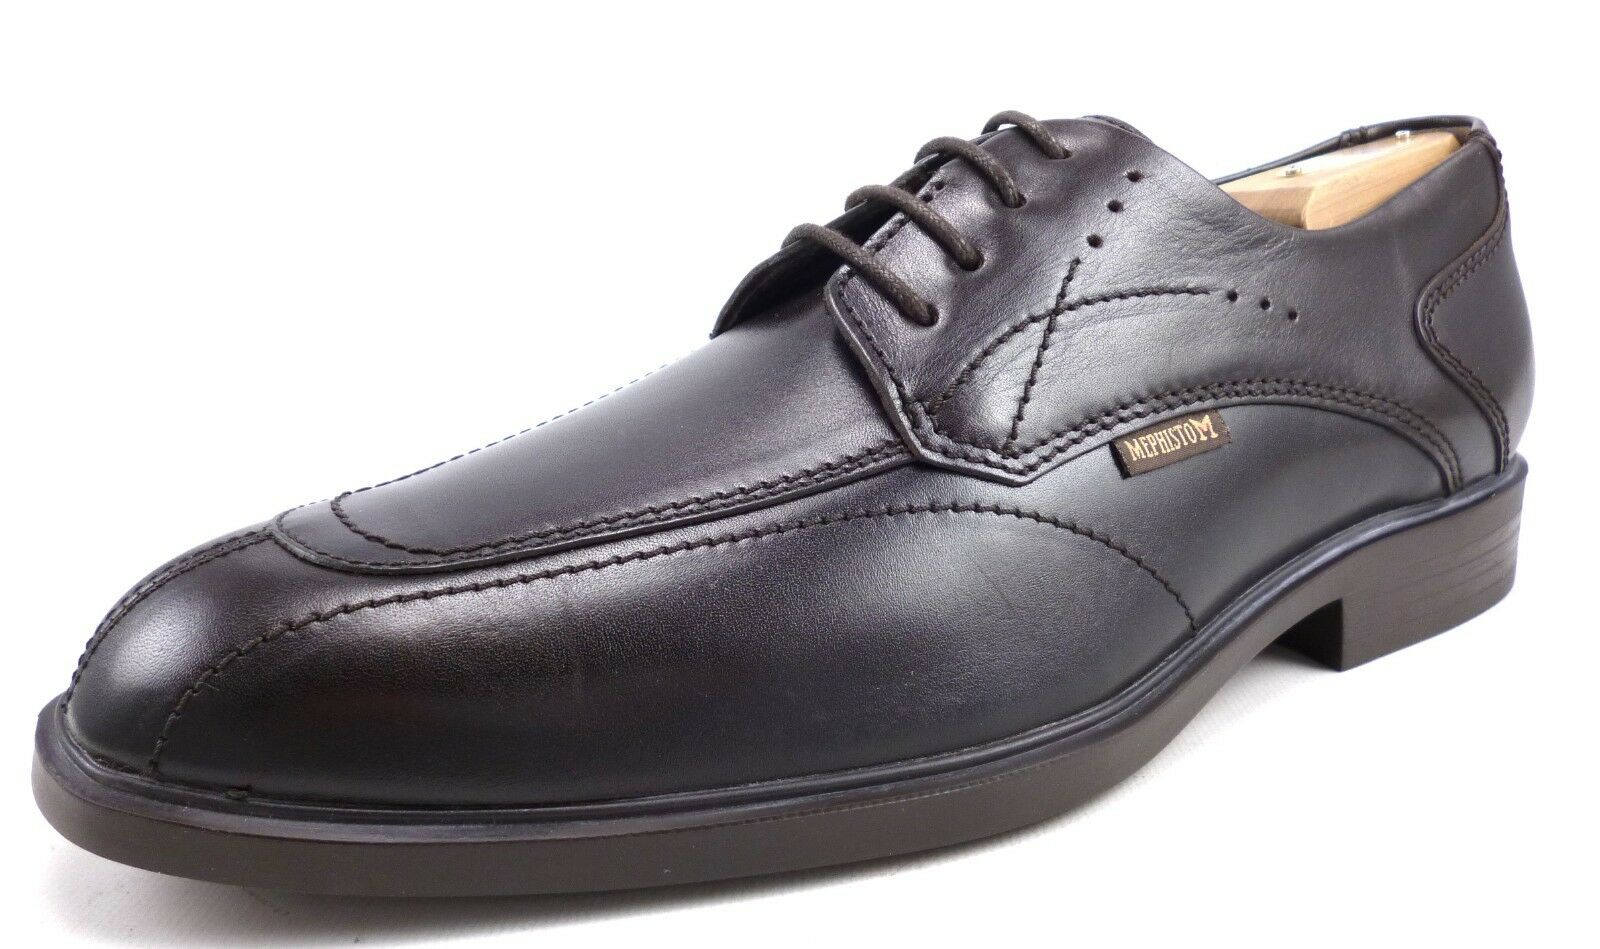 Mephisto Men's Shoes Leather Folkar Lace Up Oxfords Dark Brown Size 8.5